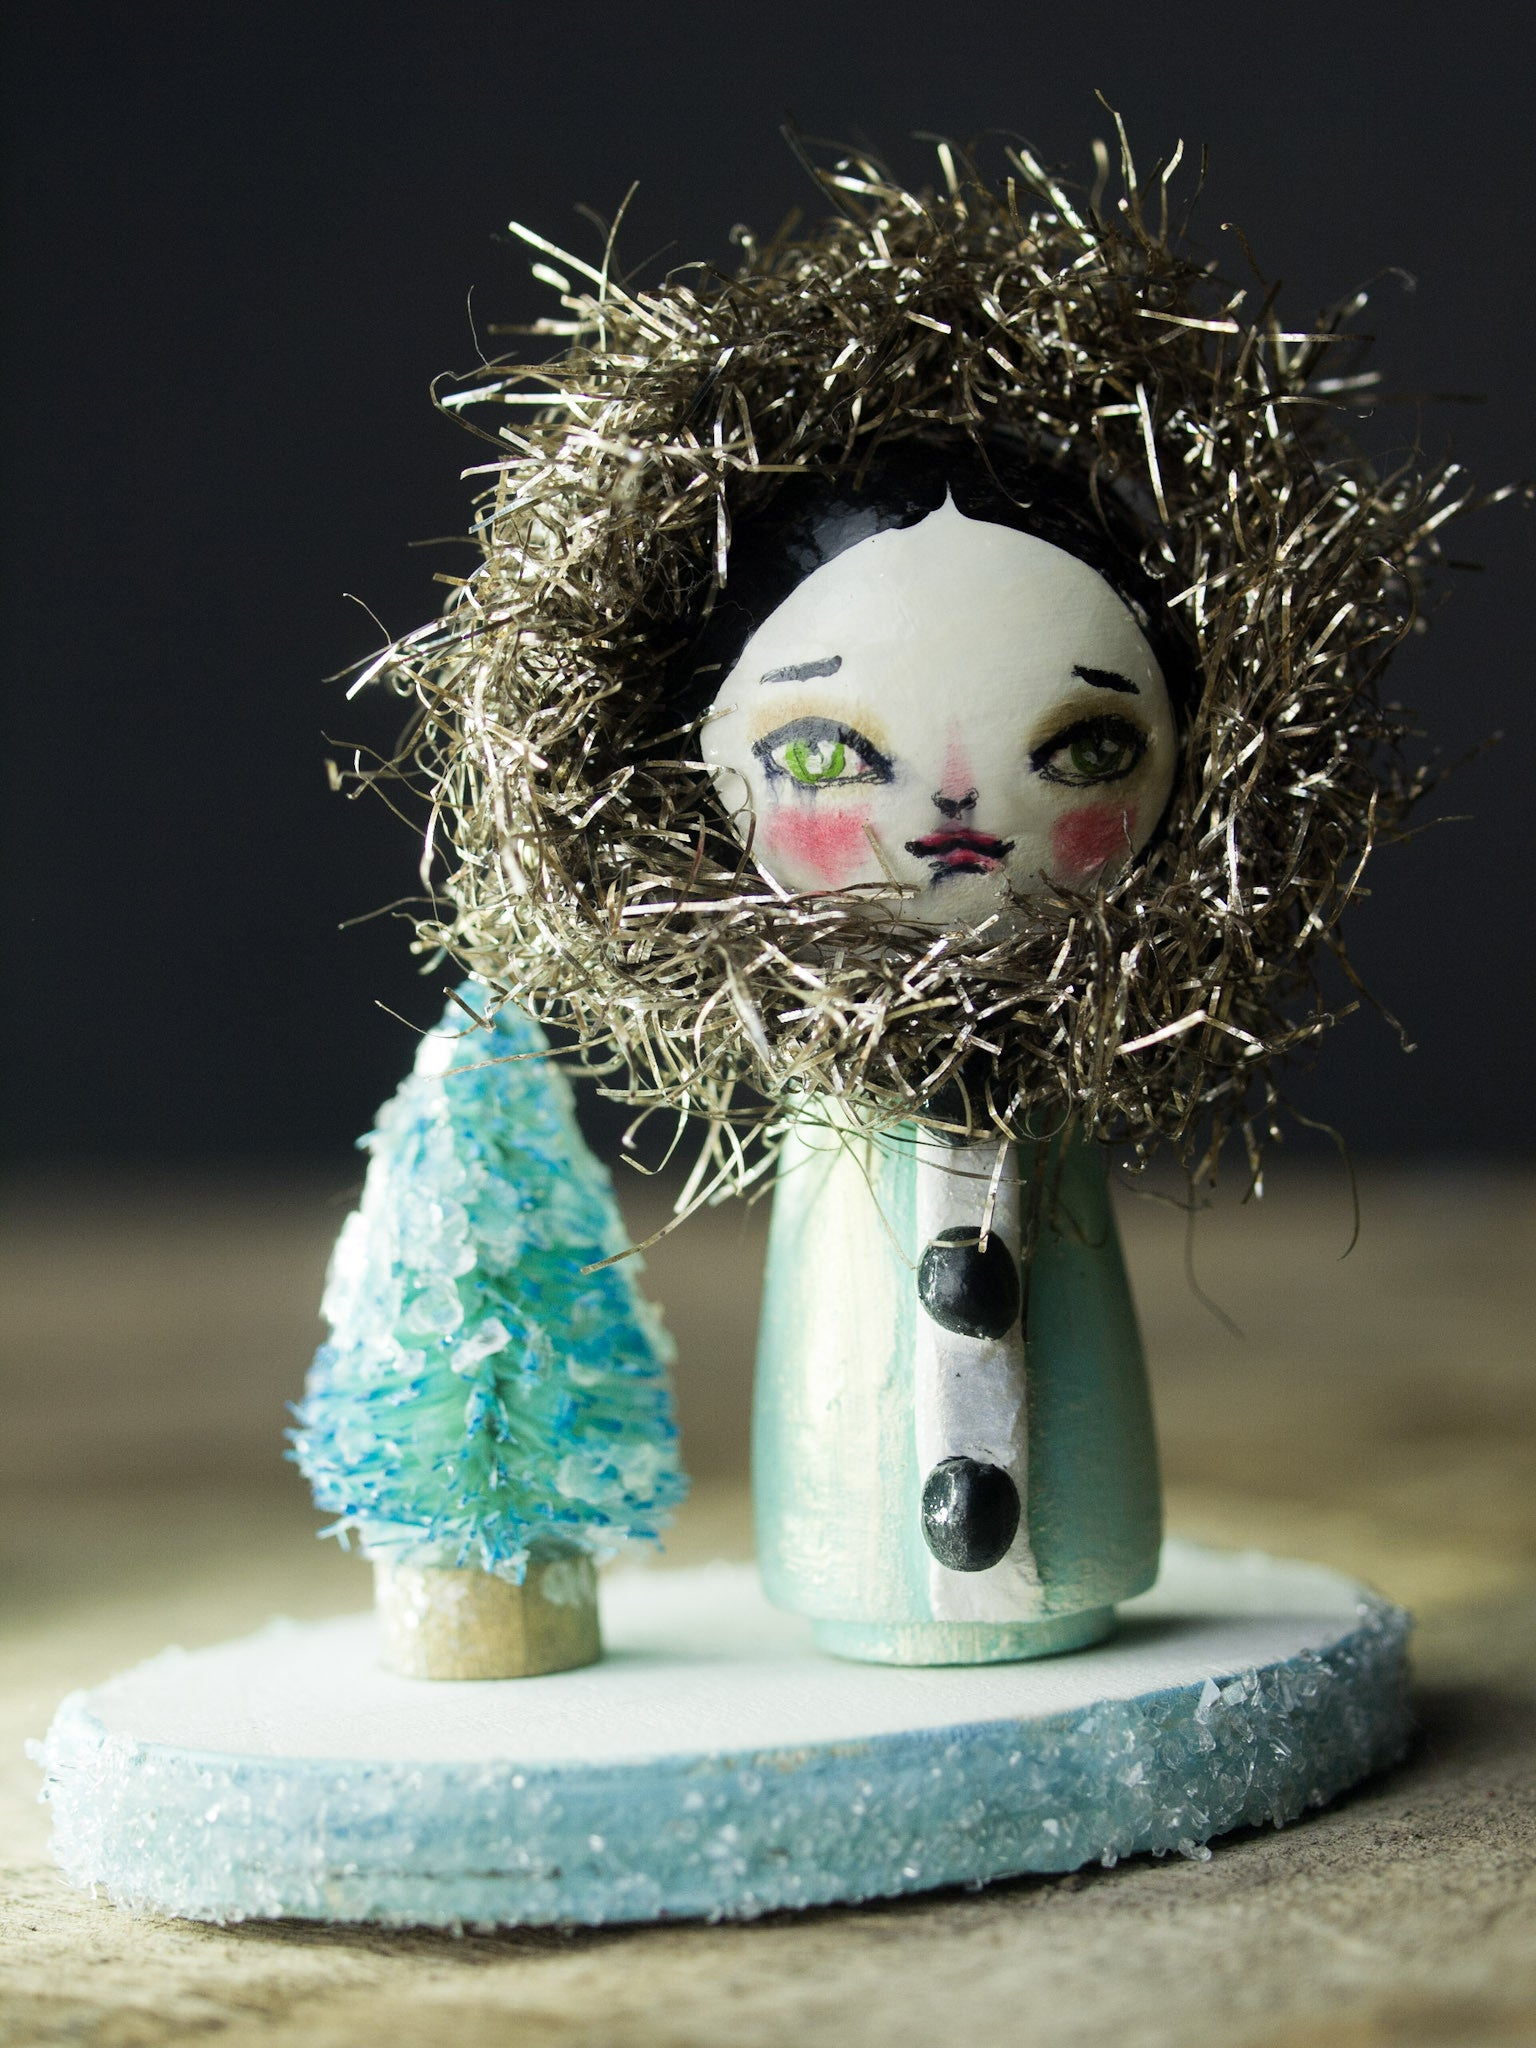 The queen of the North, a holiday wood kokeshi art doll created by Danita Art